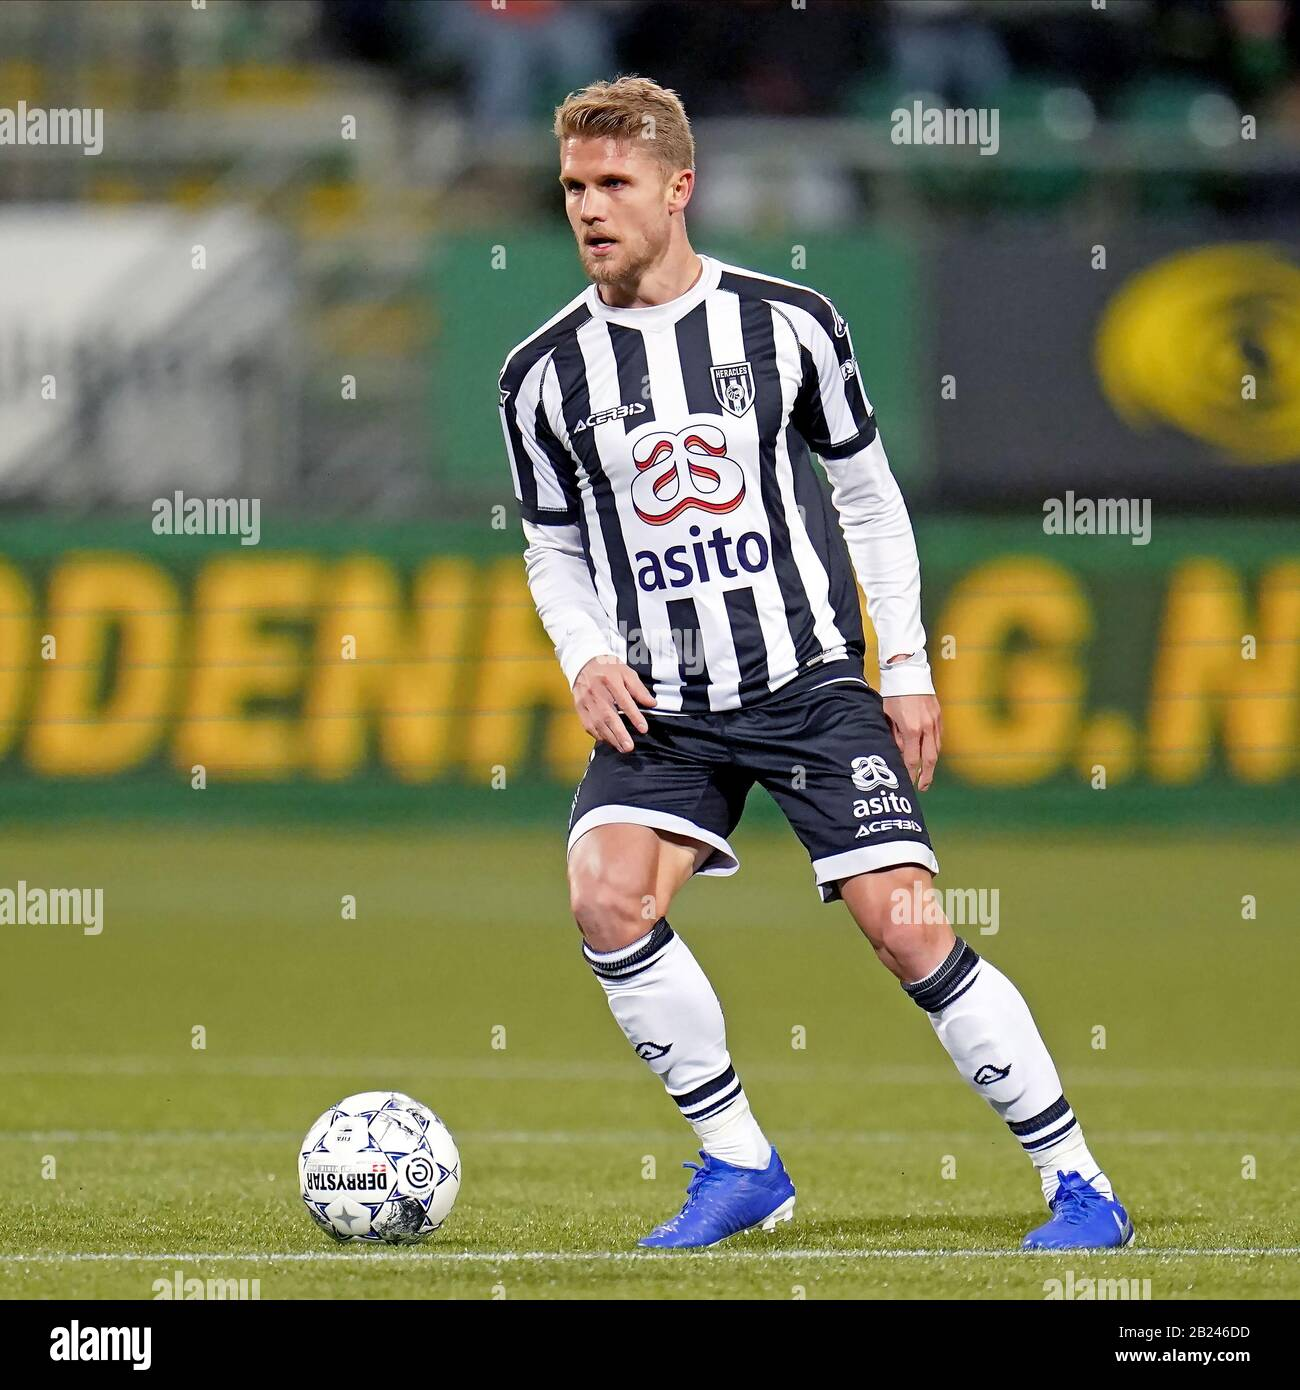 The Hague Netherlands 29th Feb 2020 The Hague 29 02 2020 Cars Jeans Stadion Ado Den Haag Dutch Eredivisie Football Season 2019 2020 Heracles Player Alexander Merkel On The Ball During The Game Ado